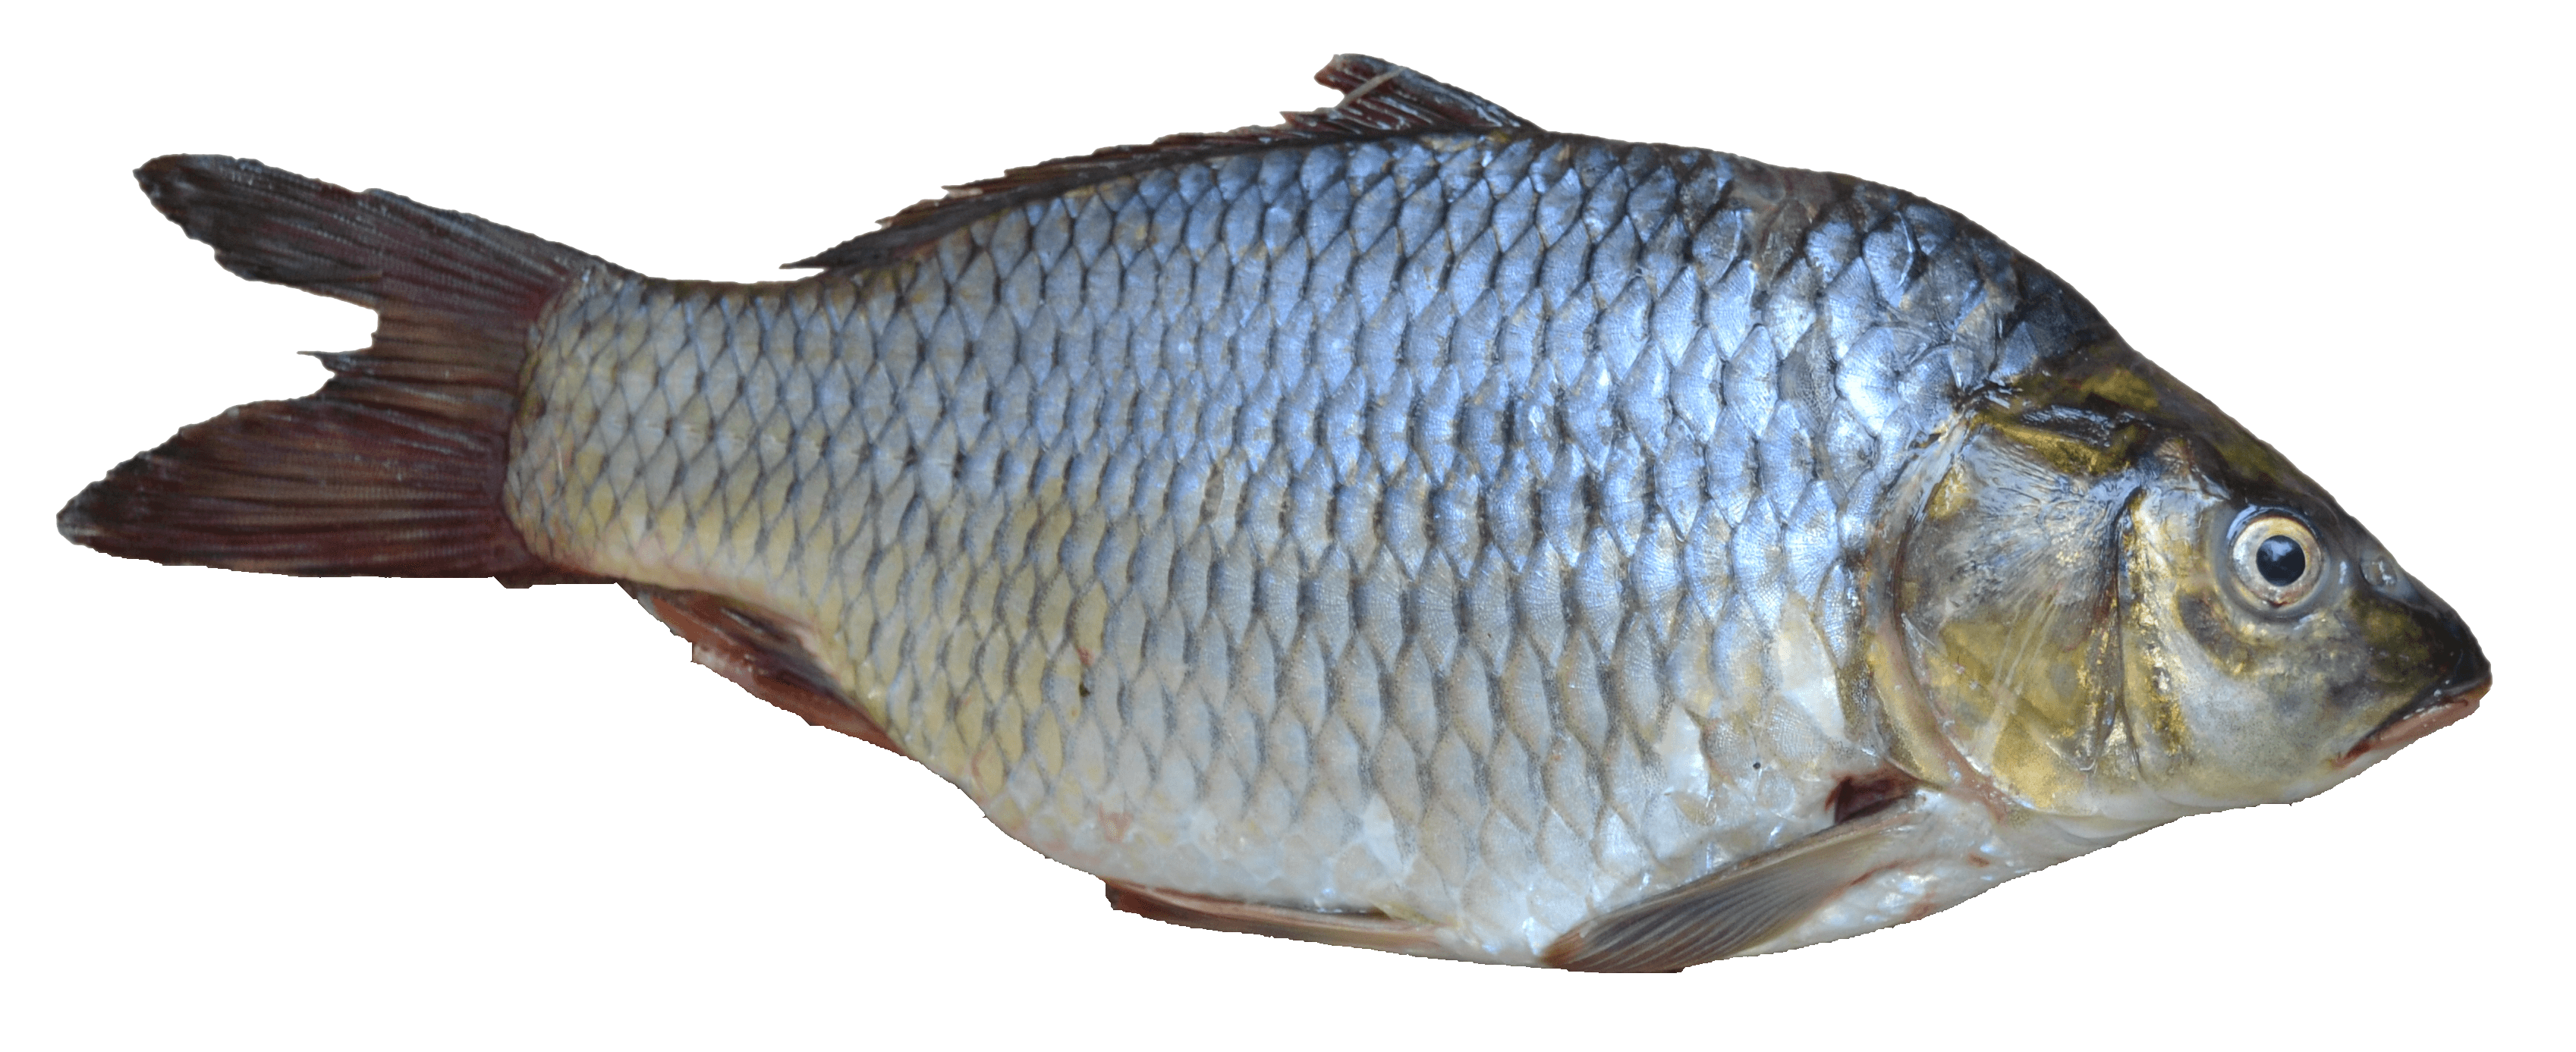 Fish png image purepng free transparent cc0 png image for Fish without scales